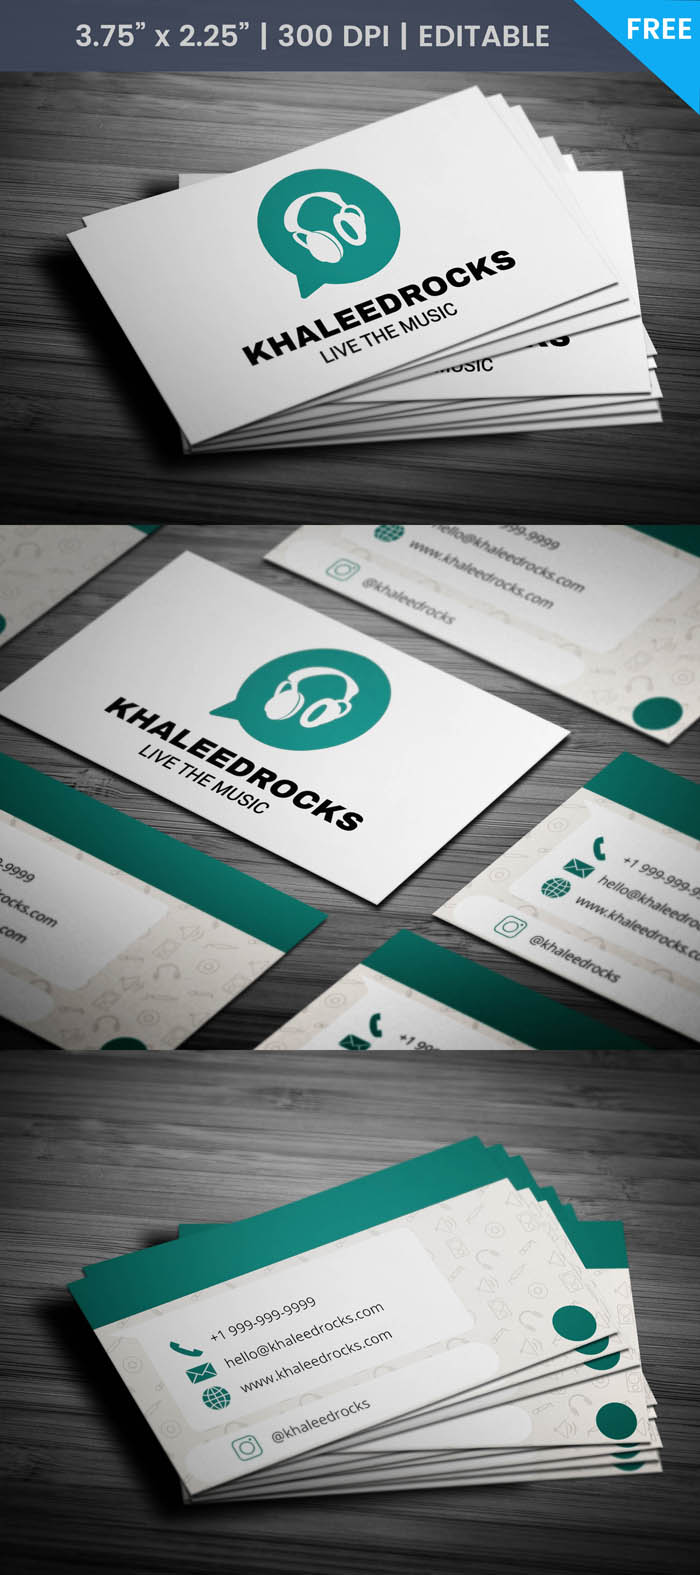 Whatsapp Themed Dj Business Card - Full Preview